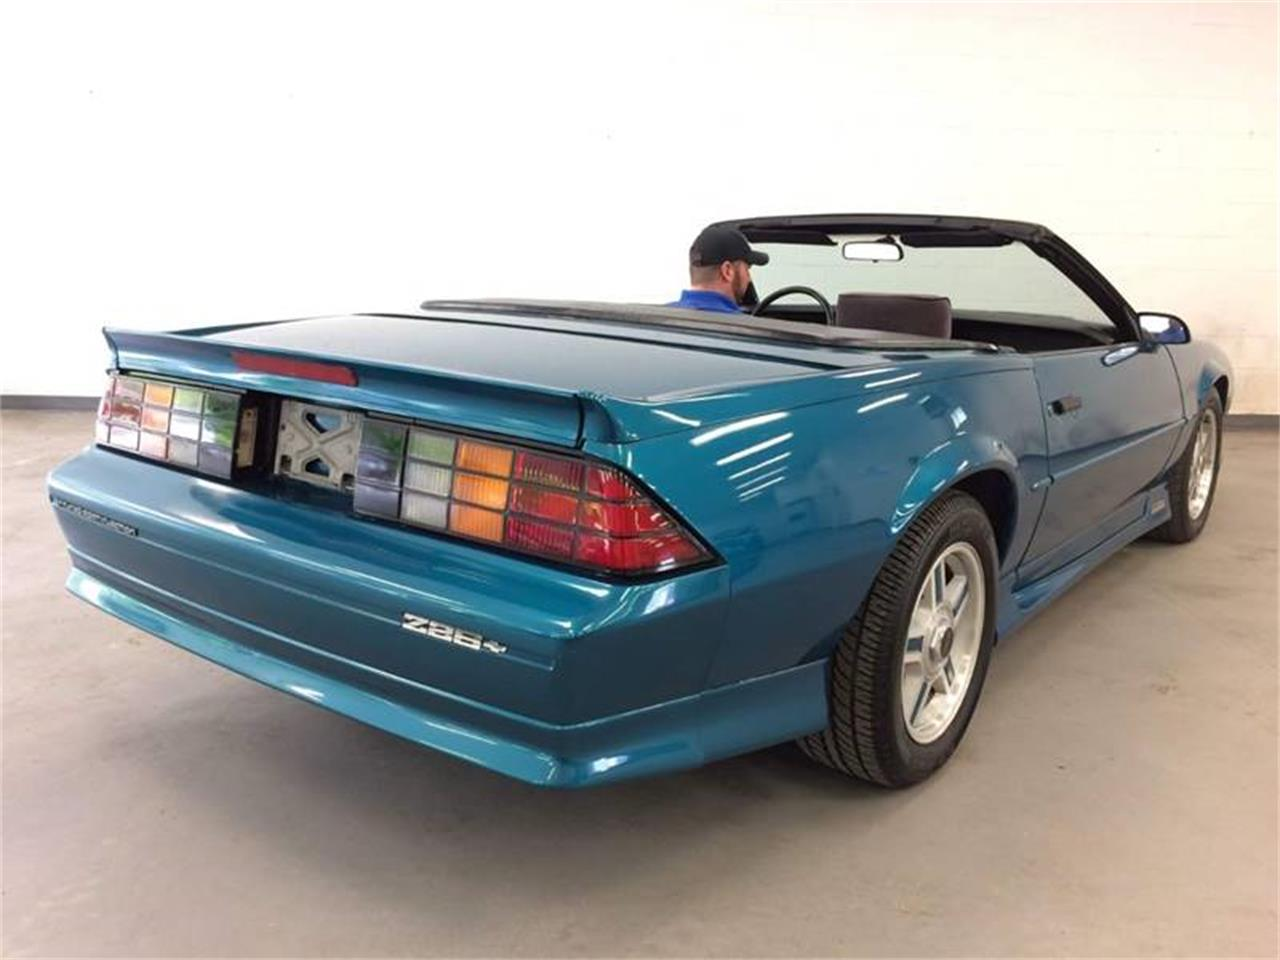 Large Picture of 1992 Chevrolet Camaro located in New York - $12,995.00 - Q4F9